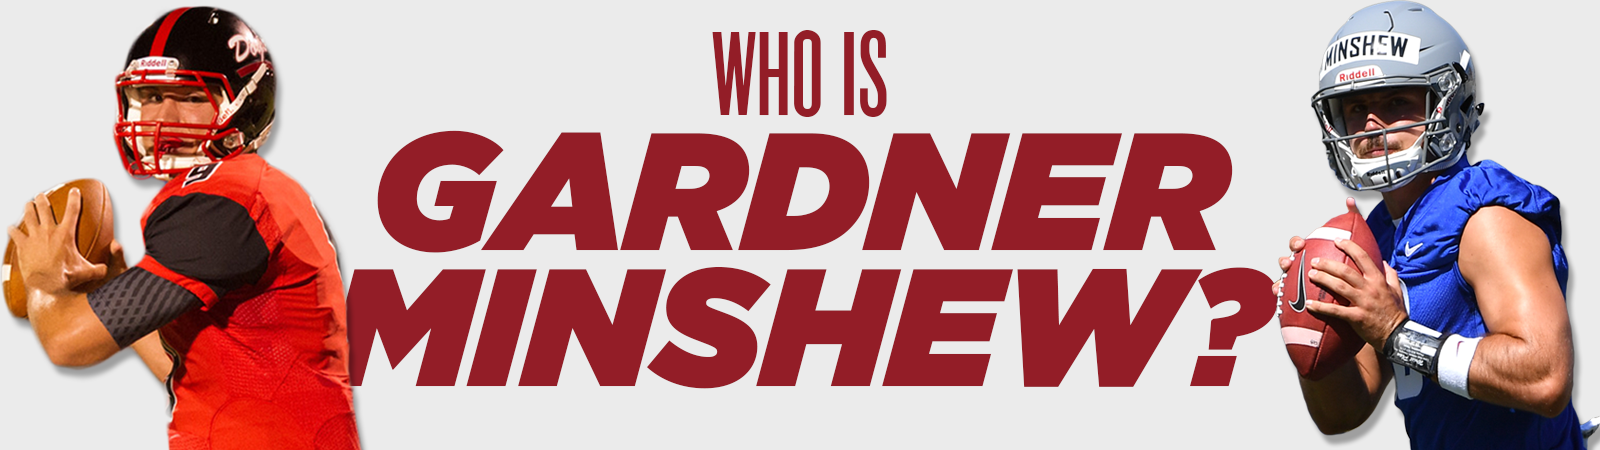 Who is Gardner Minshew?